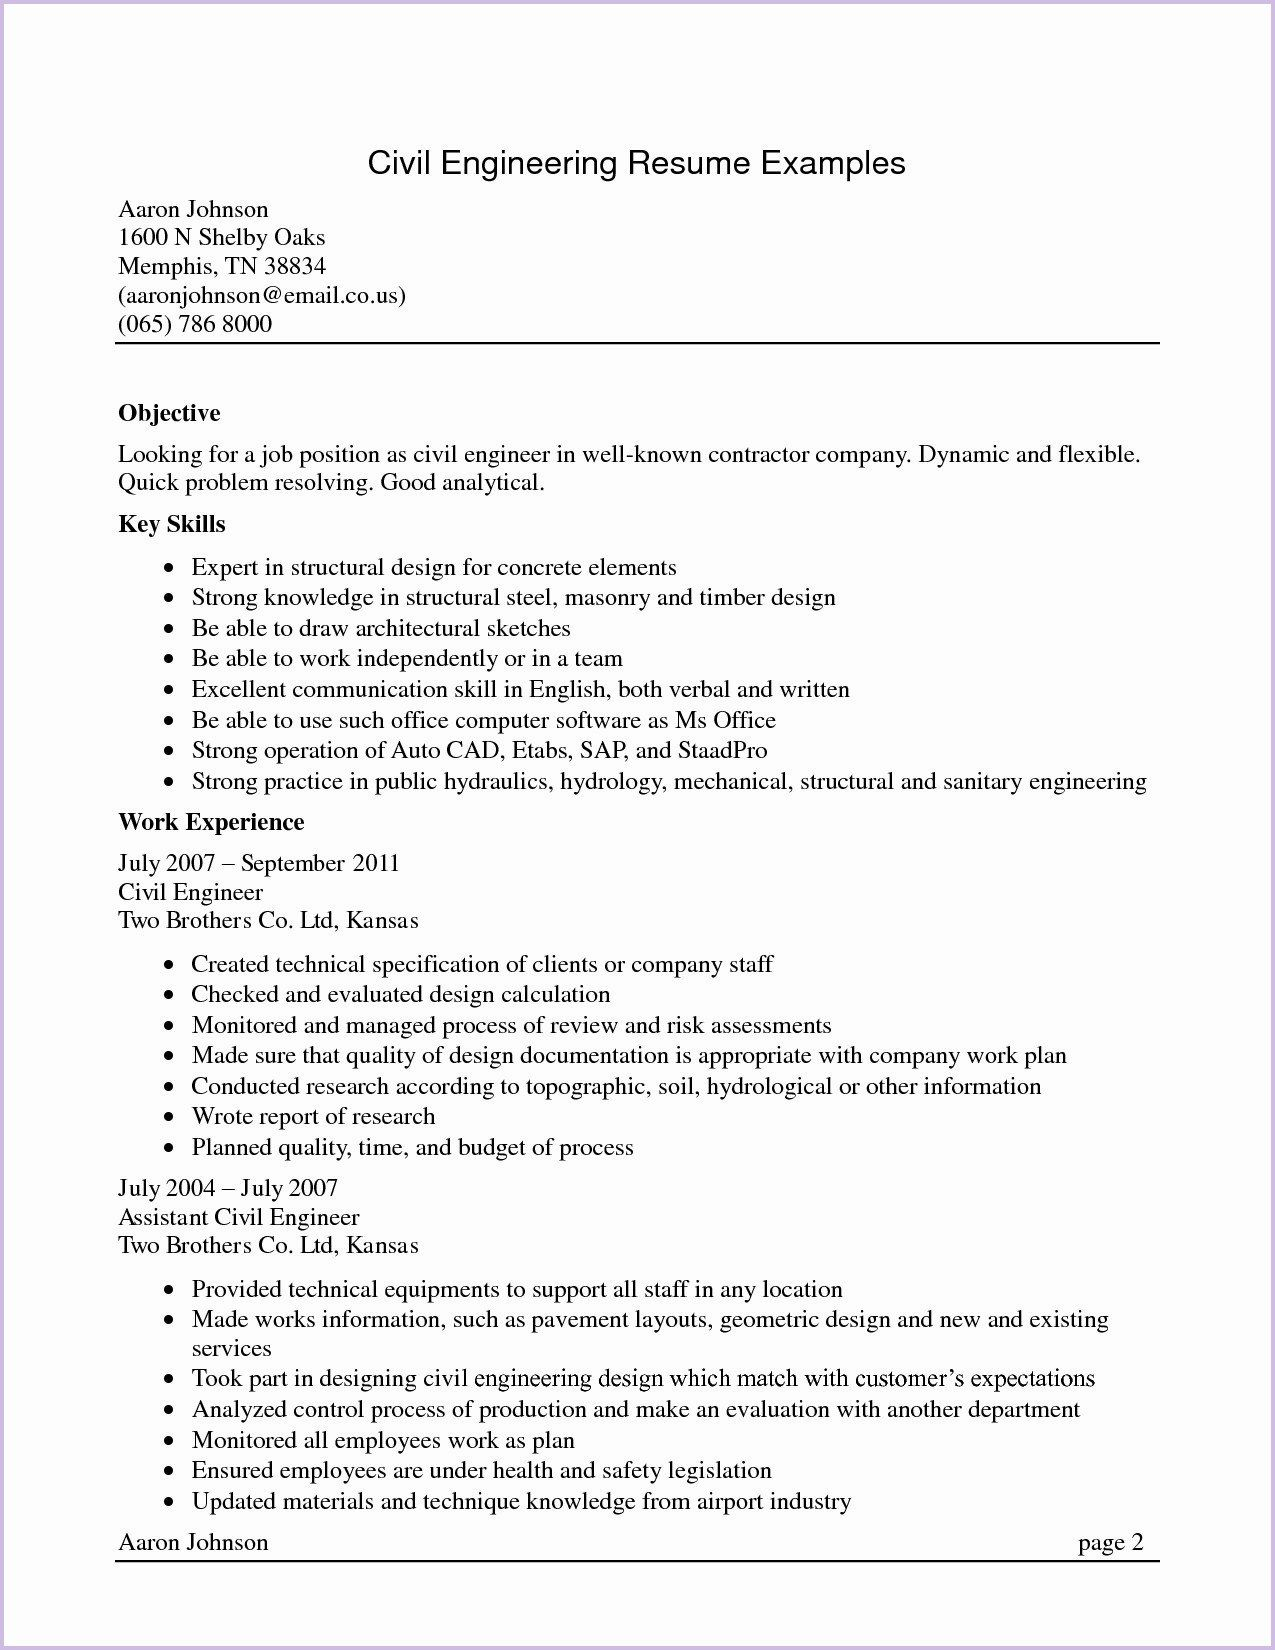 Pin by Lorri Kilian on Nursing Civil engineer resume